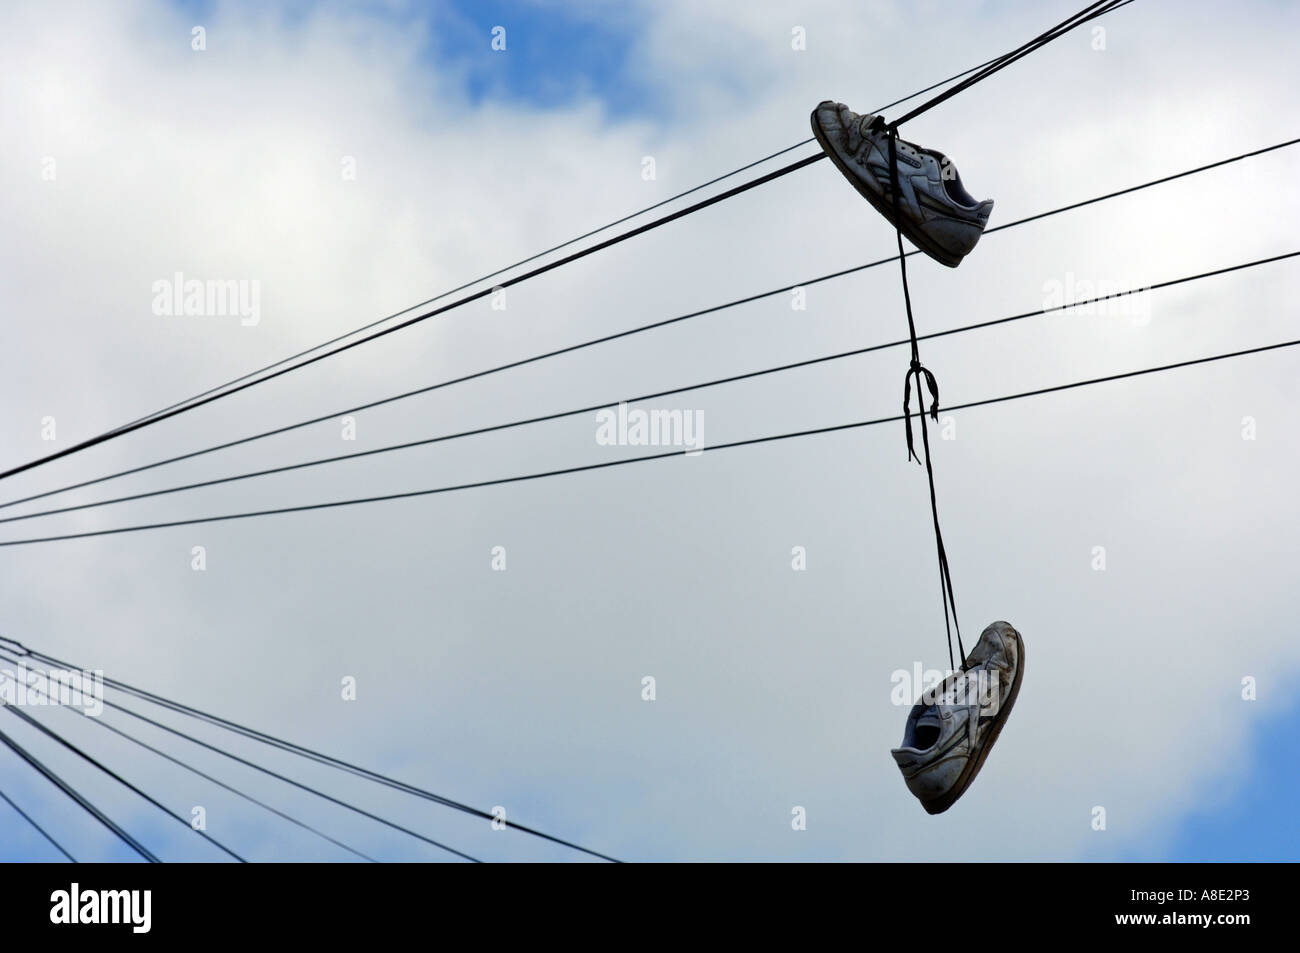 sneakers hanging telephone wire stock photos sneakers hanging rh alamy com telephone wireless headsets telephone wire splice